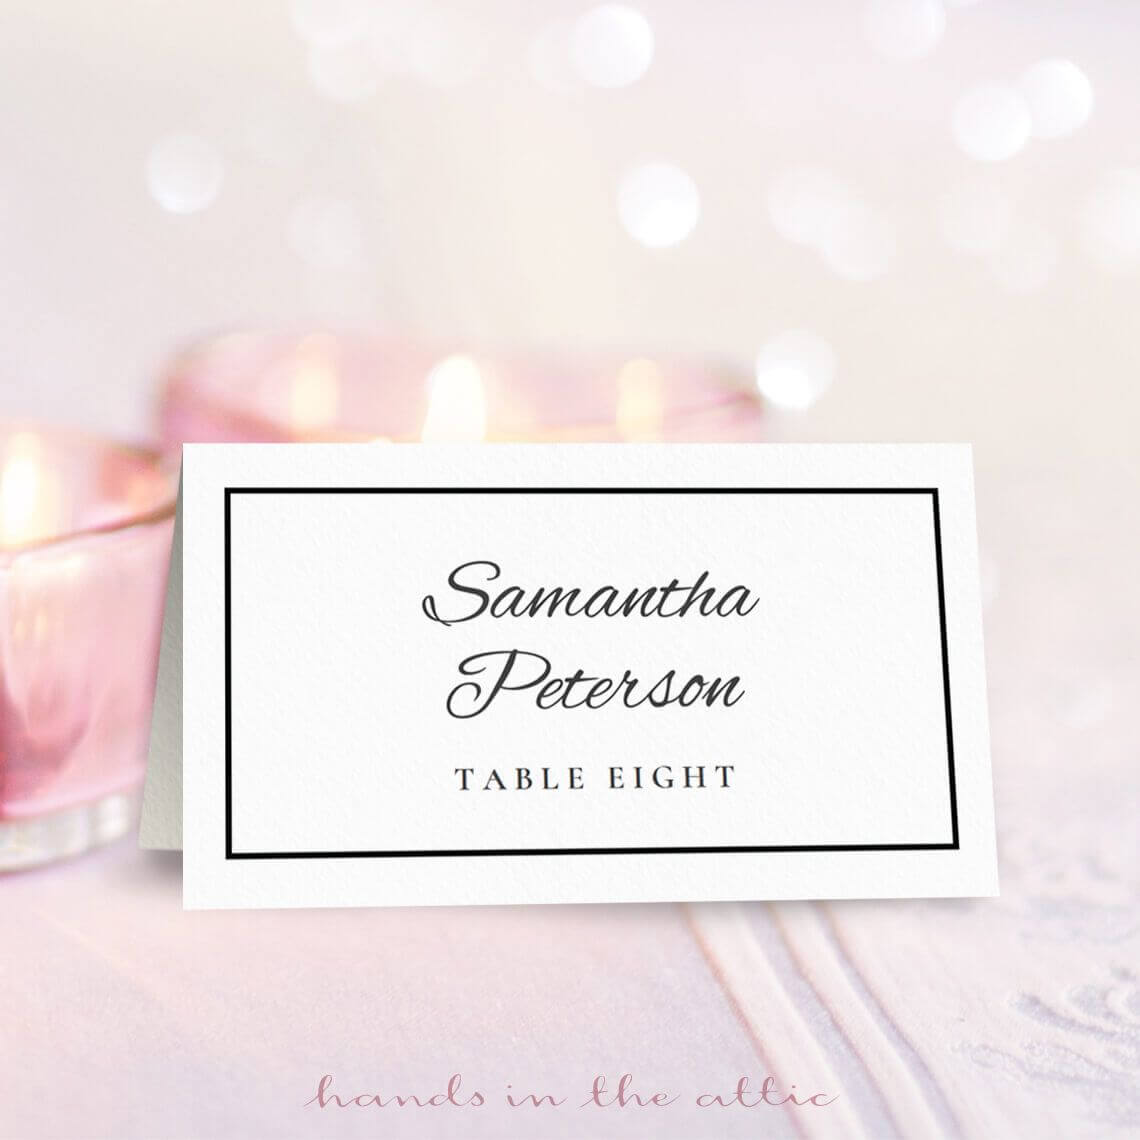 002 Template Ideas For Place Outstanding Cards Free 4 Per with regard to Free Place Card Templates 6 Per Page